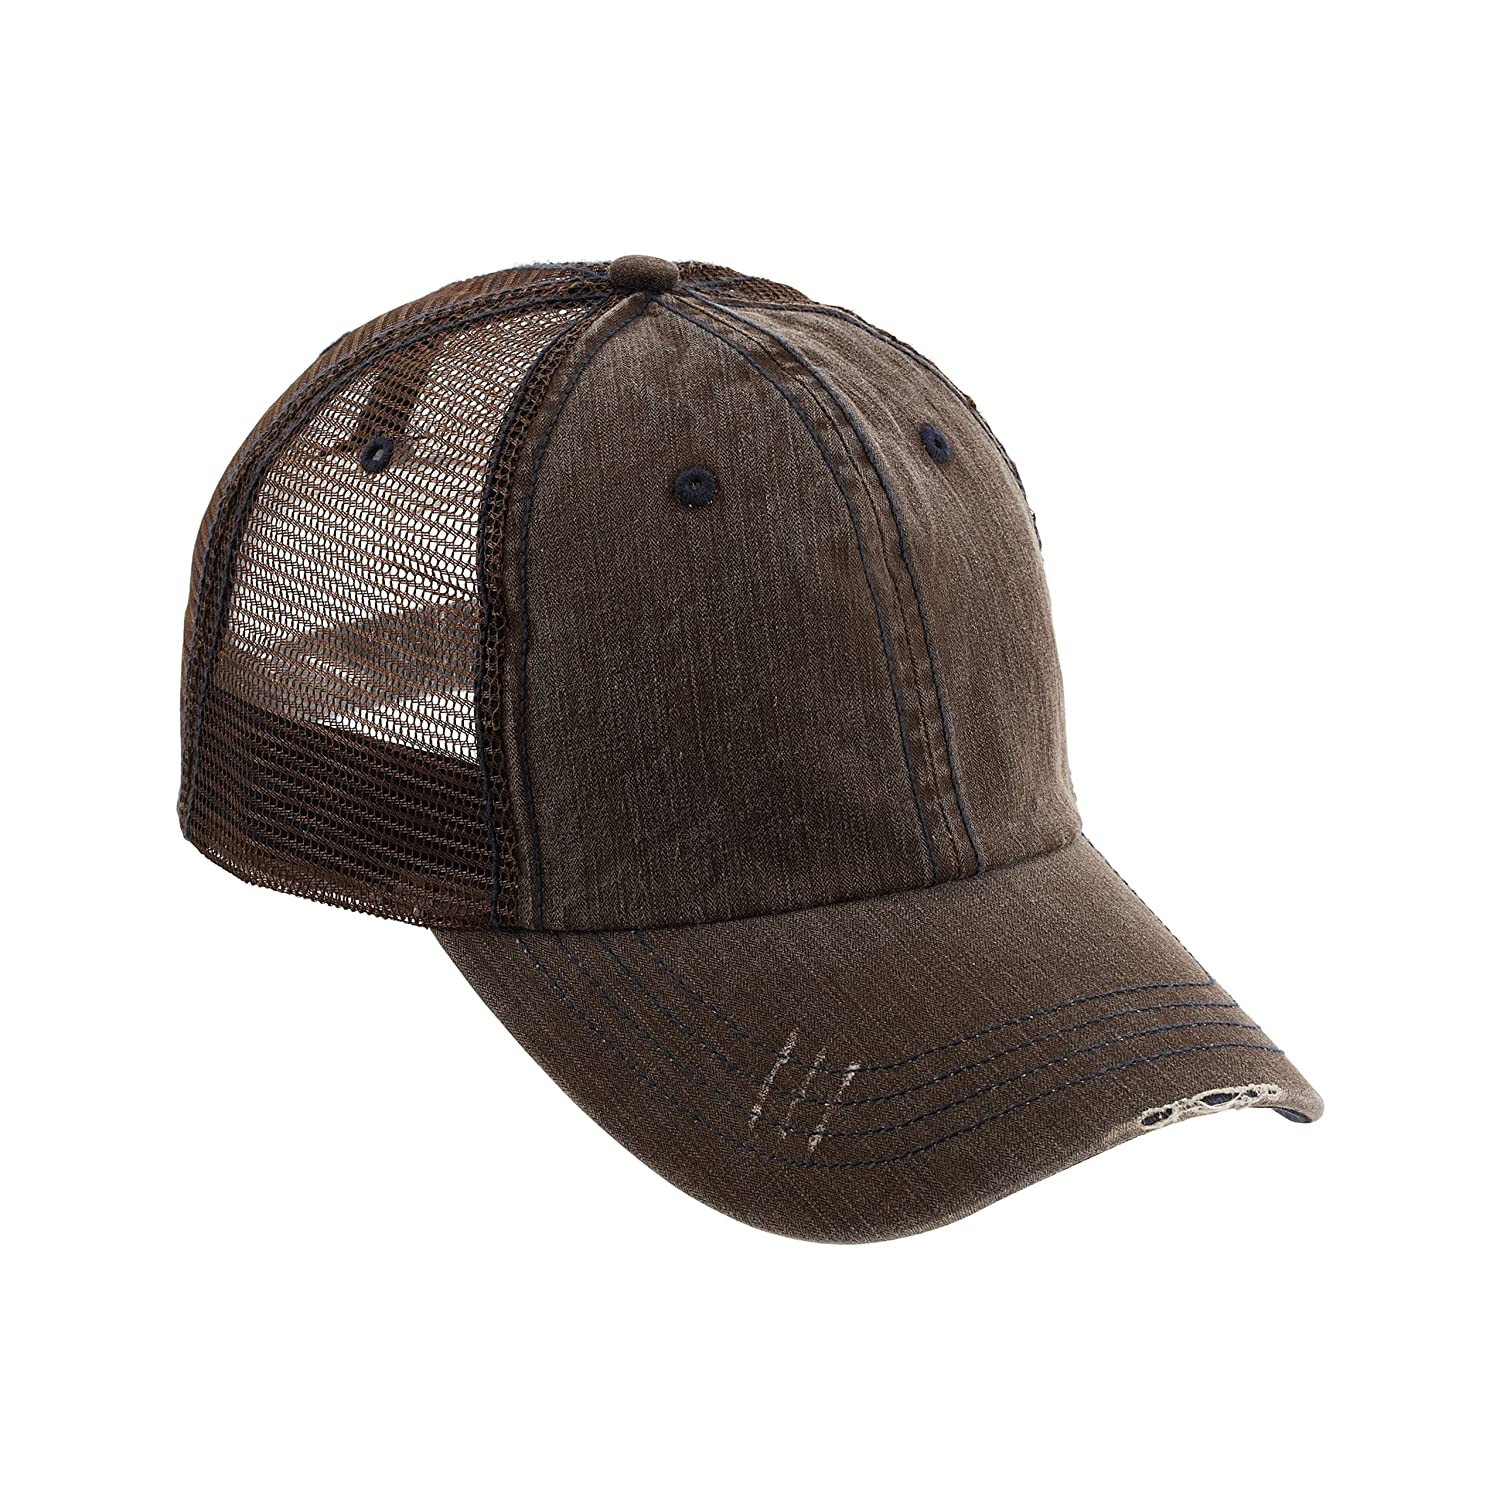 ef4eed2c7 MG Low Profile (Unstructured) Cotton Twill Mesh Cap-6990